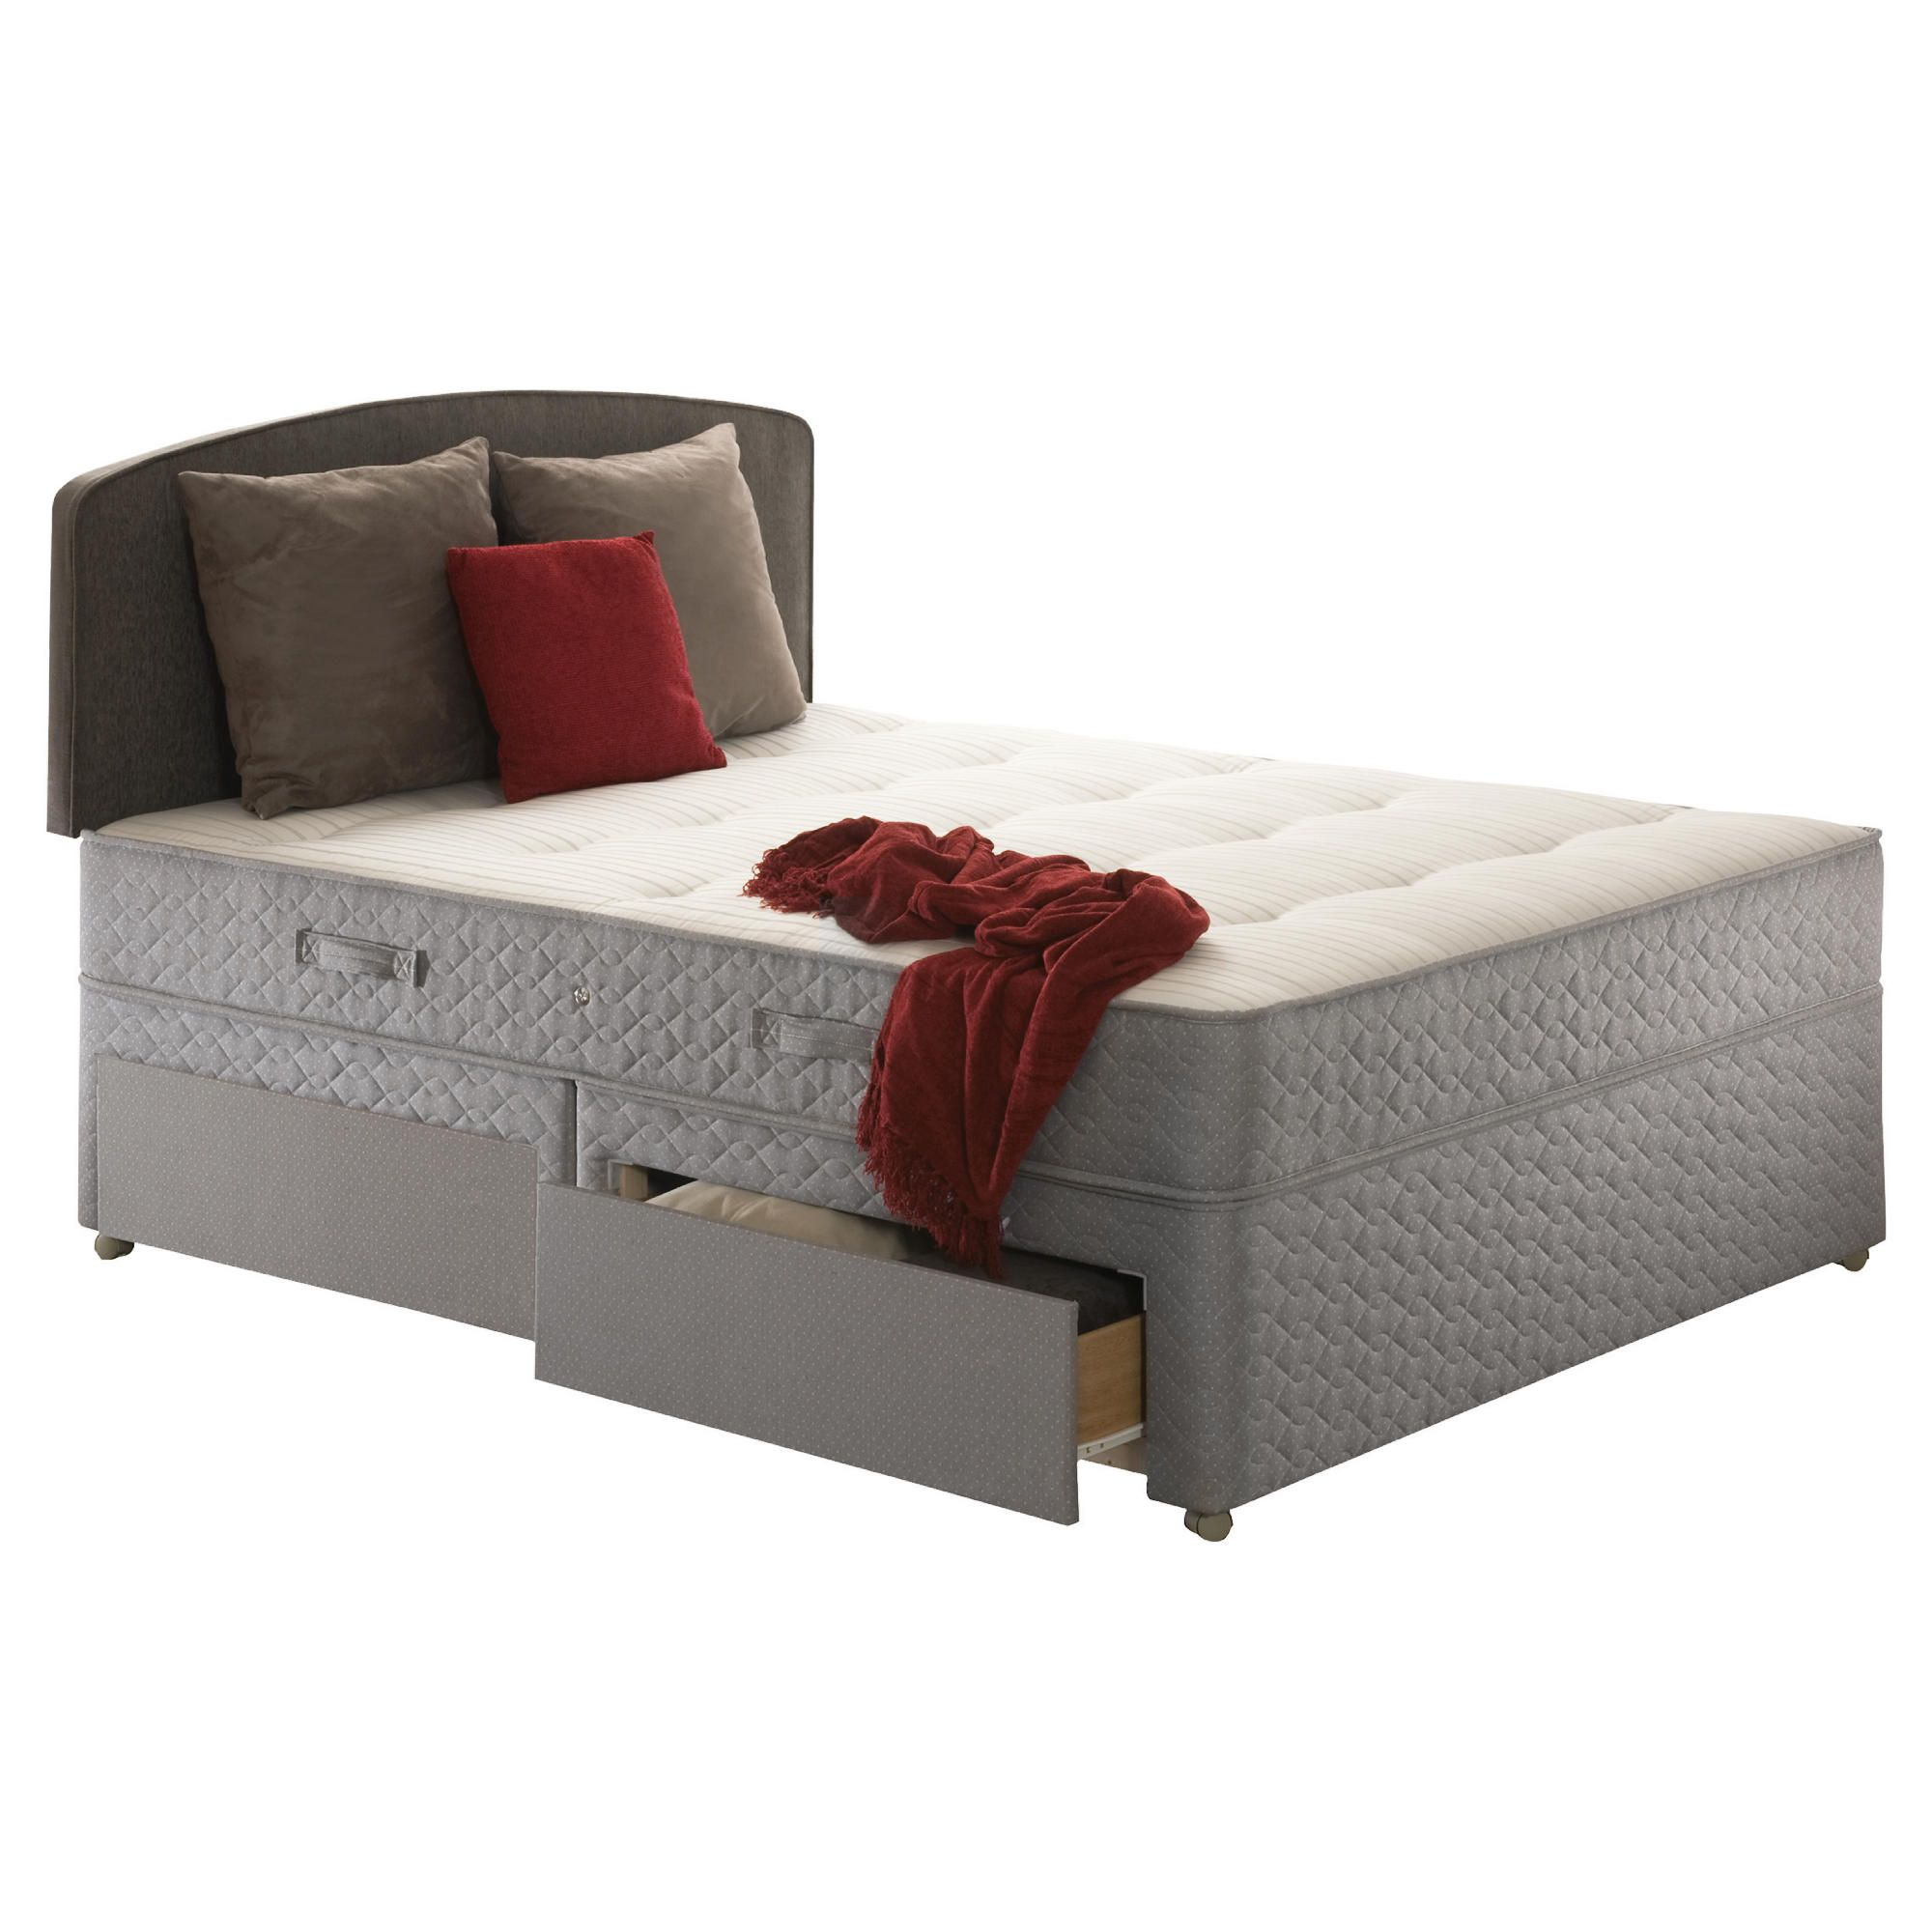 Sealy Posturepedic Ortho Backcare Plus King 4 Drawer Divan Bed at Tescos Direct